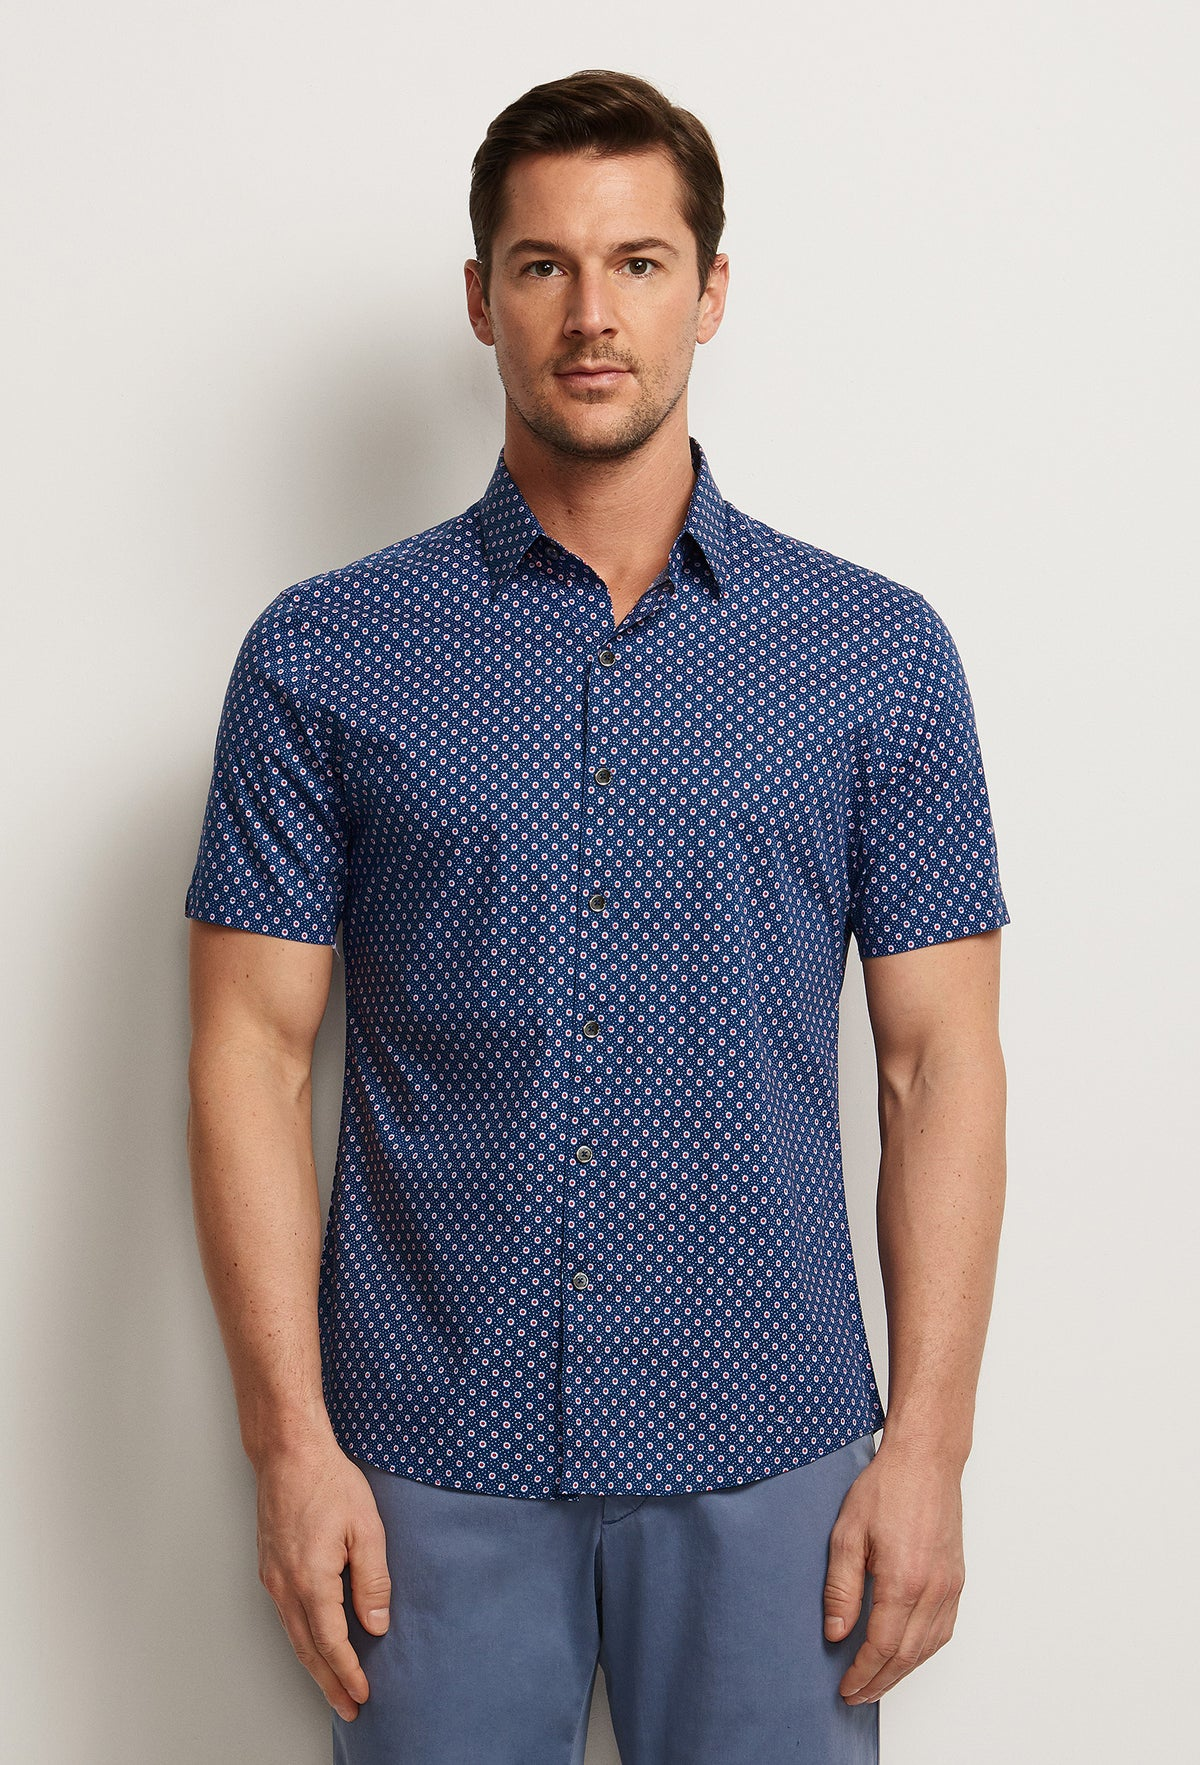 ZACHARY-PRELL-Murray-ShirtsModern-Menswear-New-Dress-Code